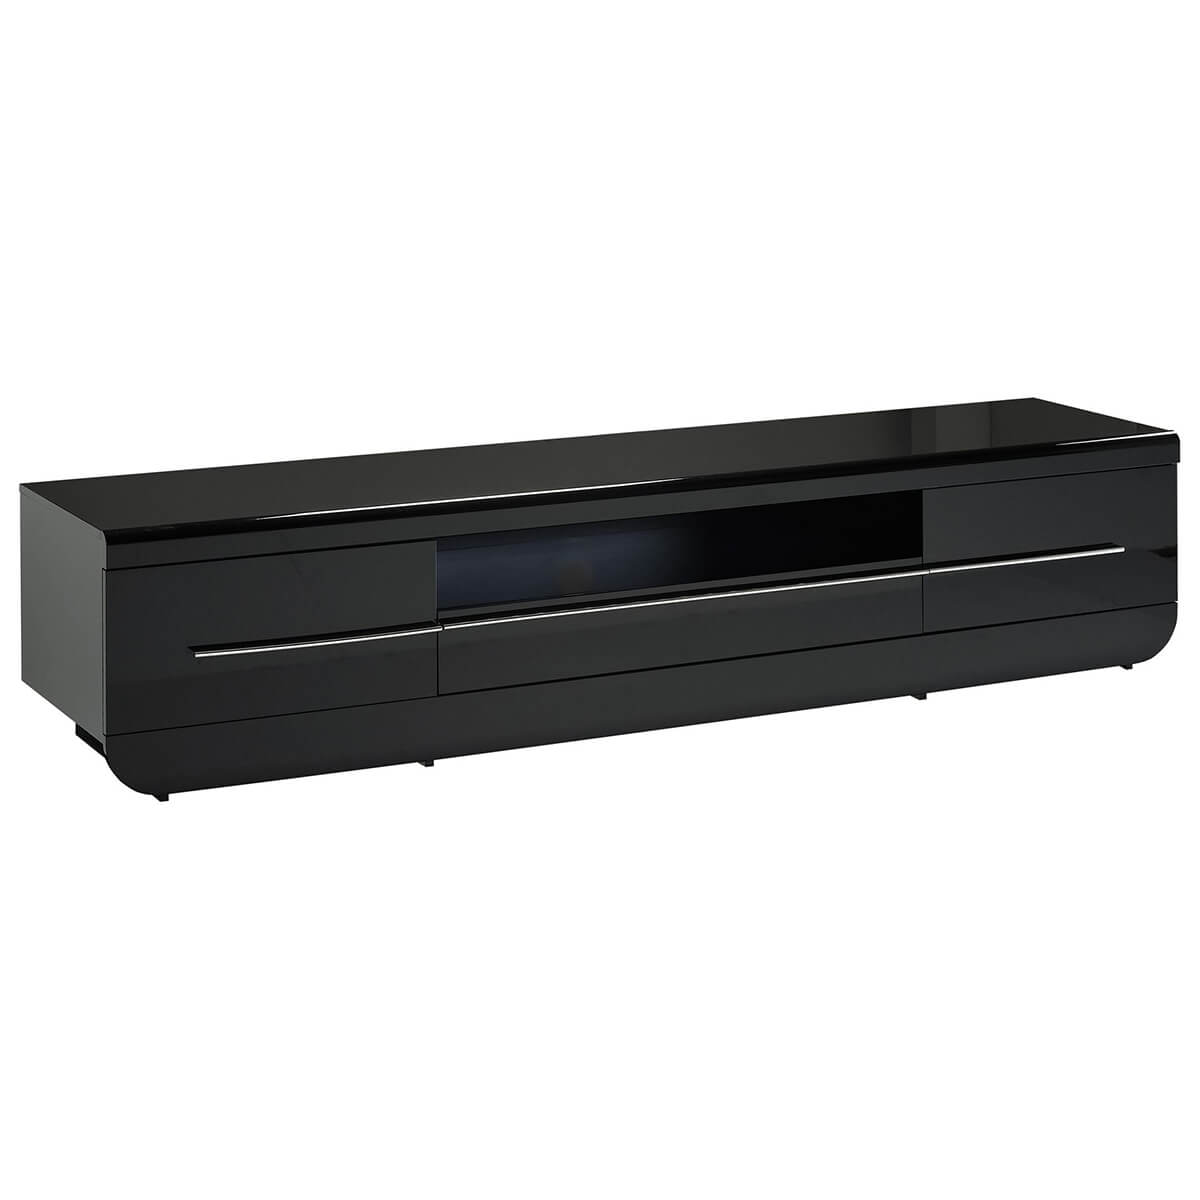 Floyd TV Unit 220cm Black High Gloss